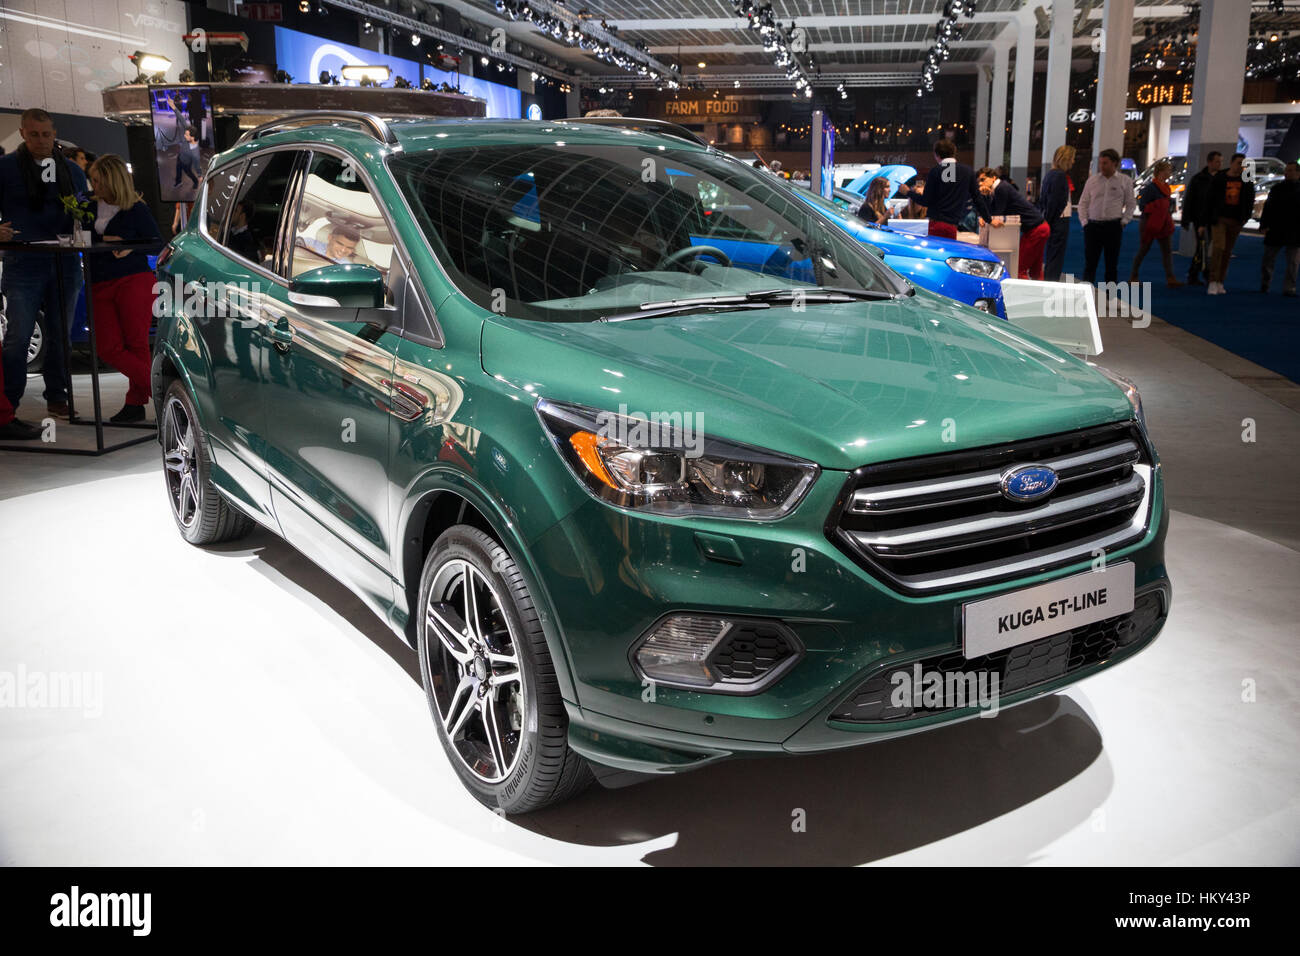 Brussels jan 19 2017 new 2017 ford kuga st line presented at the brussels jan 19 2017 new 2017 ford kuga st line presented at the motor show brussels publicscrutiny Image collections